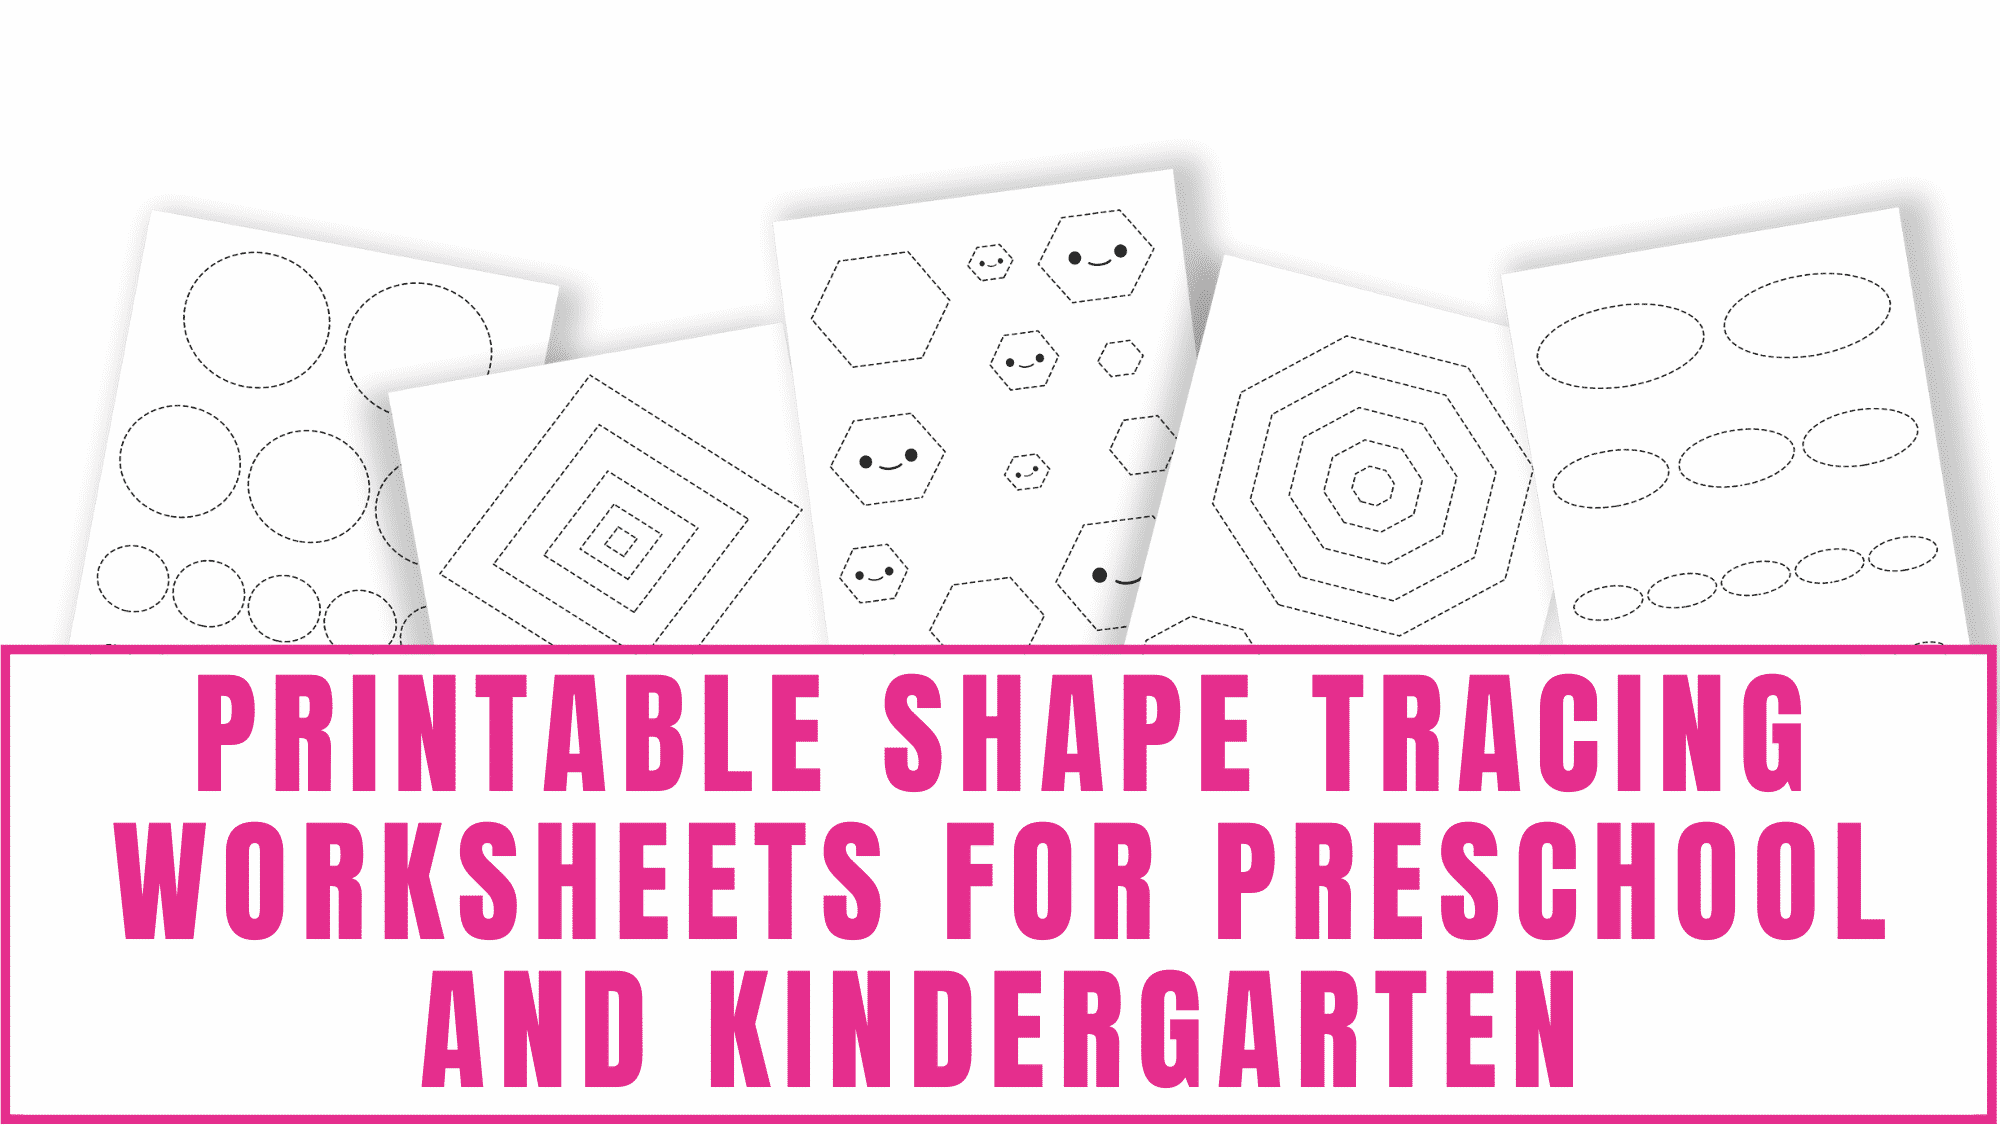 These printable shape tracing worksheets for preschool and kindergarten will help your kid learn how to draw shapes like circles, squares, and rectangles and work on shape recognition.